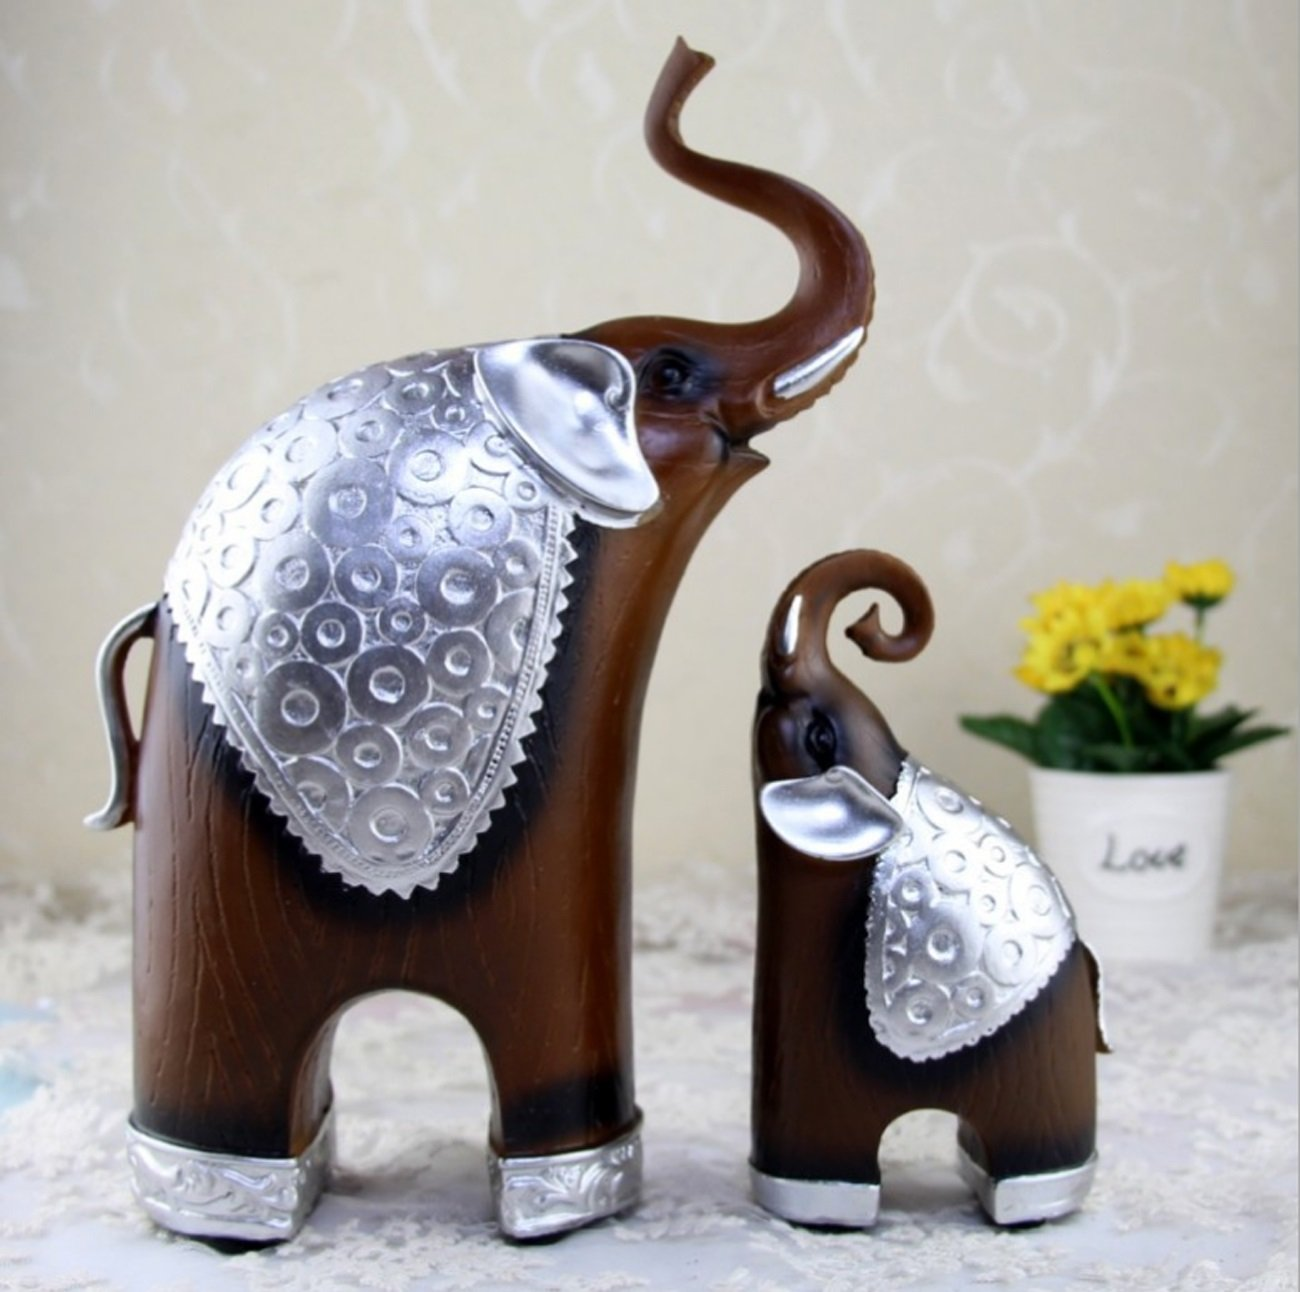 Living Room Home Furnishings Wood grain Elephant Ornaments Creative Resin Decorative Crafts by LHFJ (Image #1)